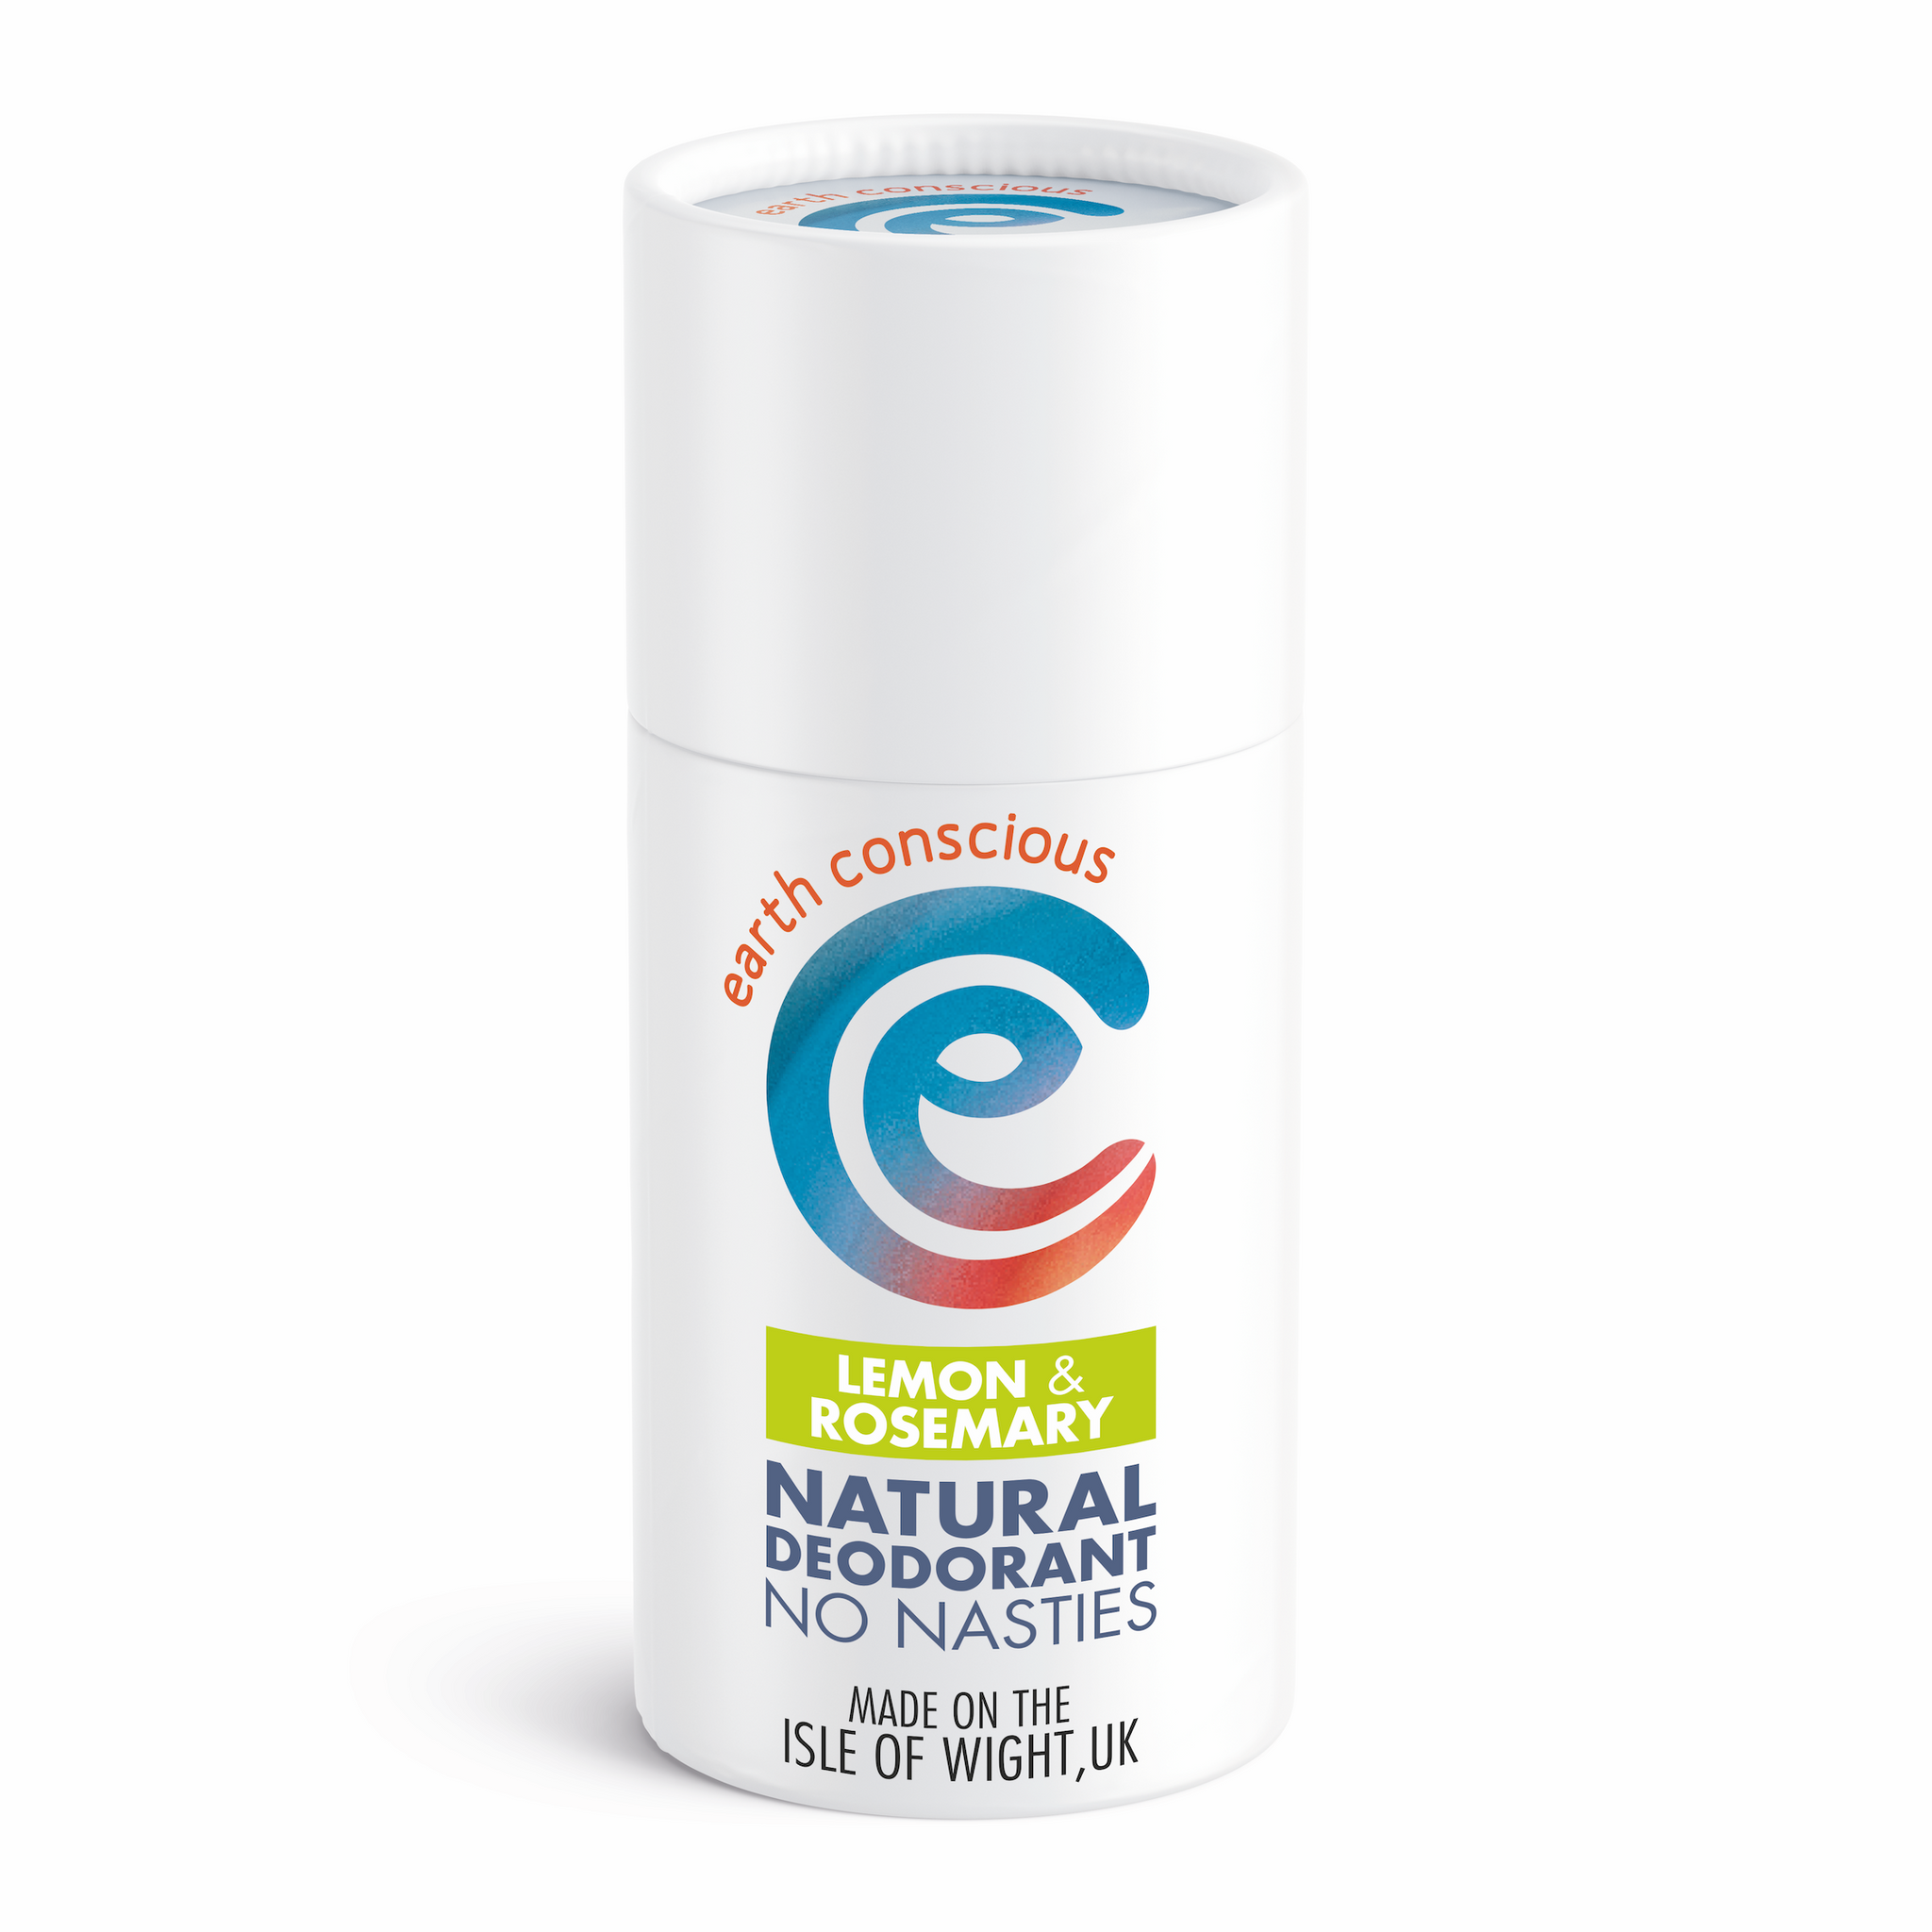 Earth conscious natural deodorant stick lemon and rosemary